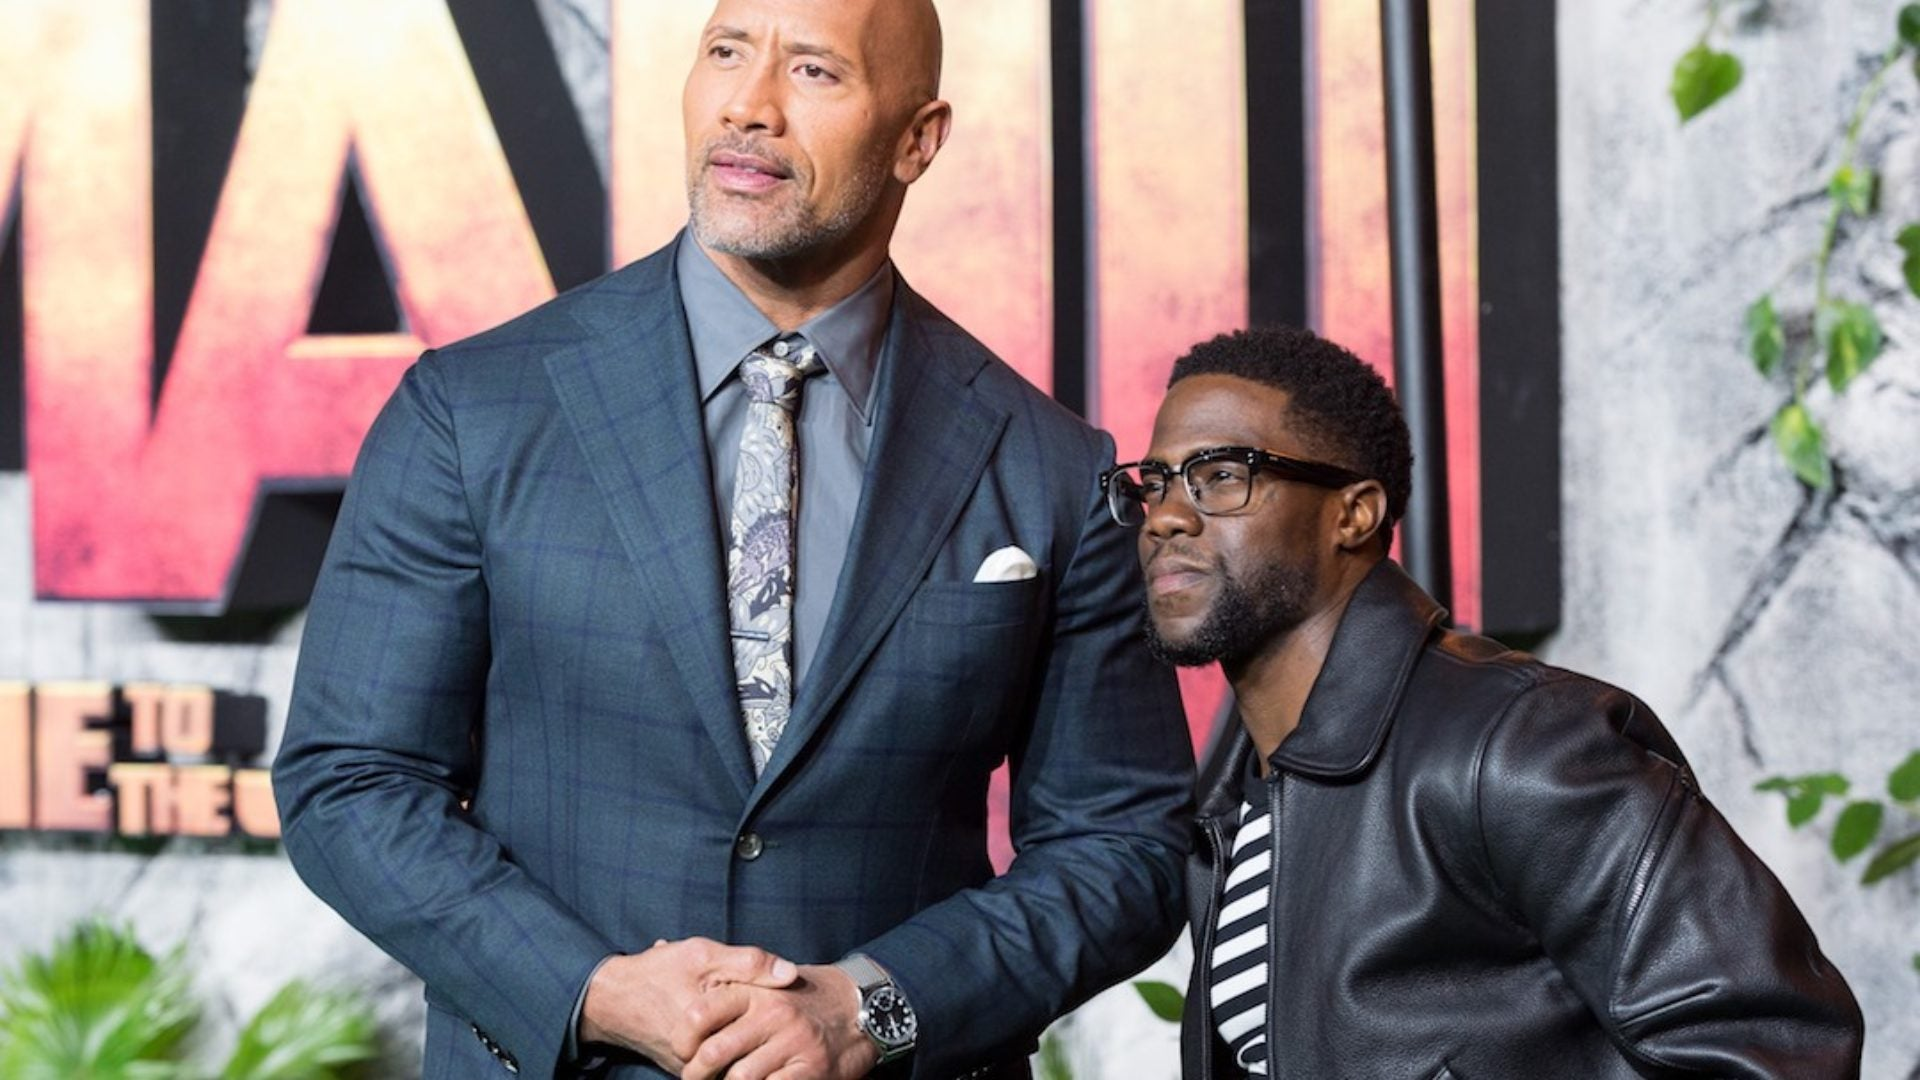 Dwayne Johnson Gives Health Update on Kevin Hart After Car Accident